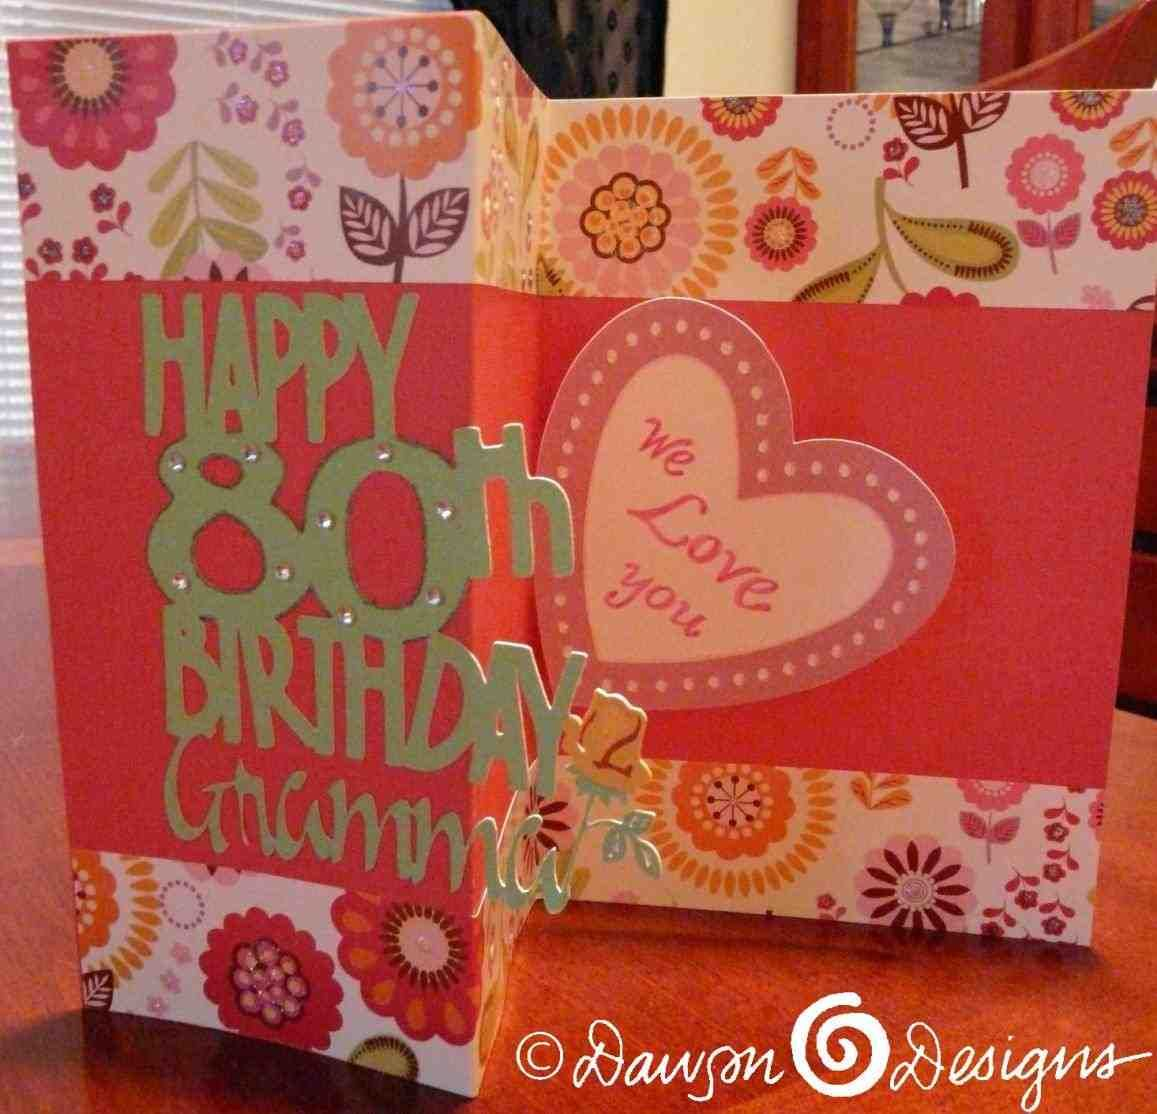 Colleen Spenser 80th Birthday Happy Card Mum Handmade